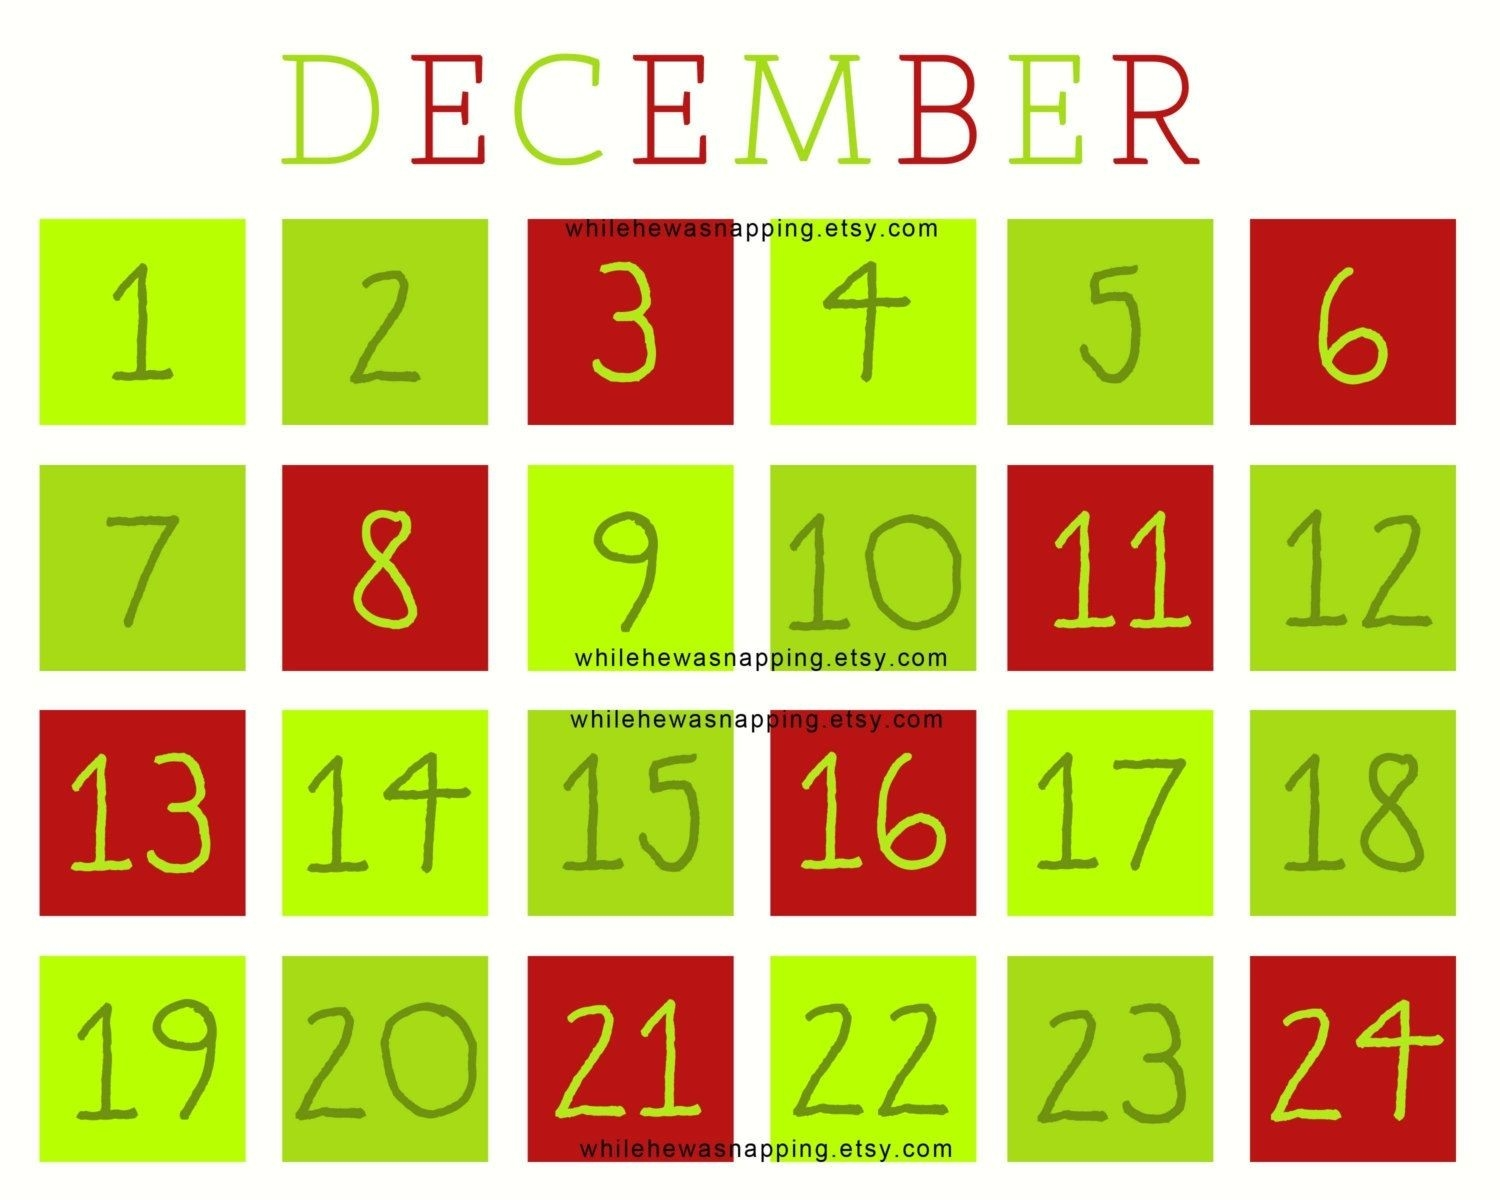 Christmas Countdown Printable Calendar | Printable Online-Microsoft Template Calendar Coundown